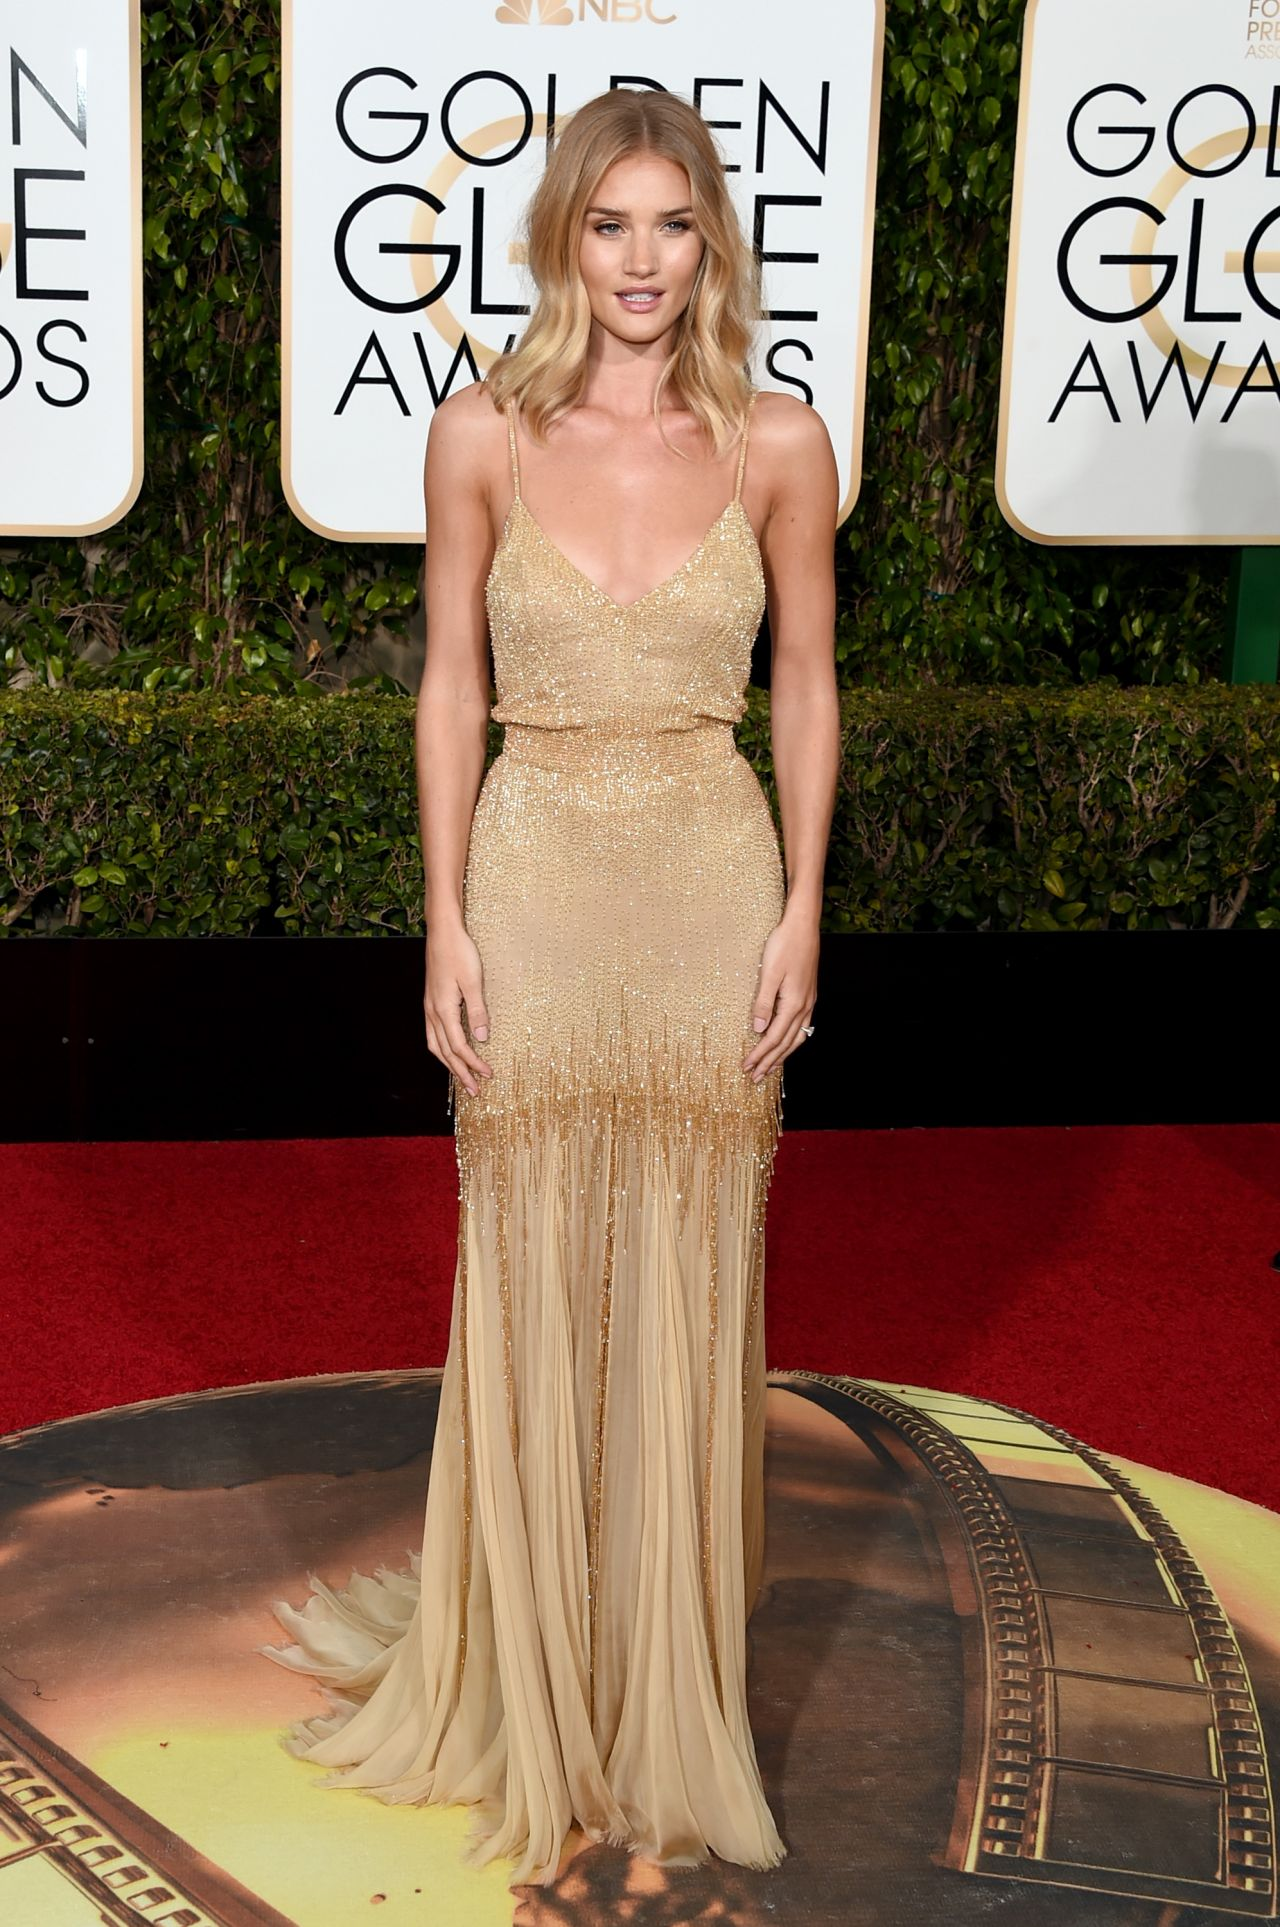 Rosie huntington whiteley 2016 golden globe awards in beverly hills - Golden globes red carpet ...